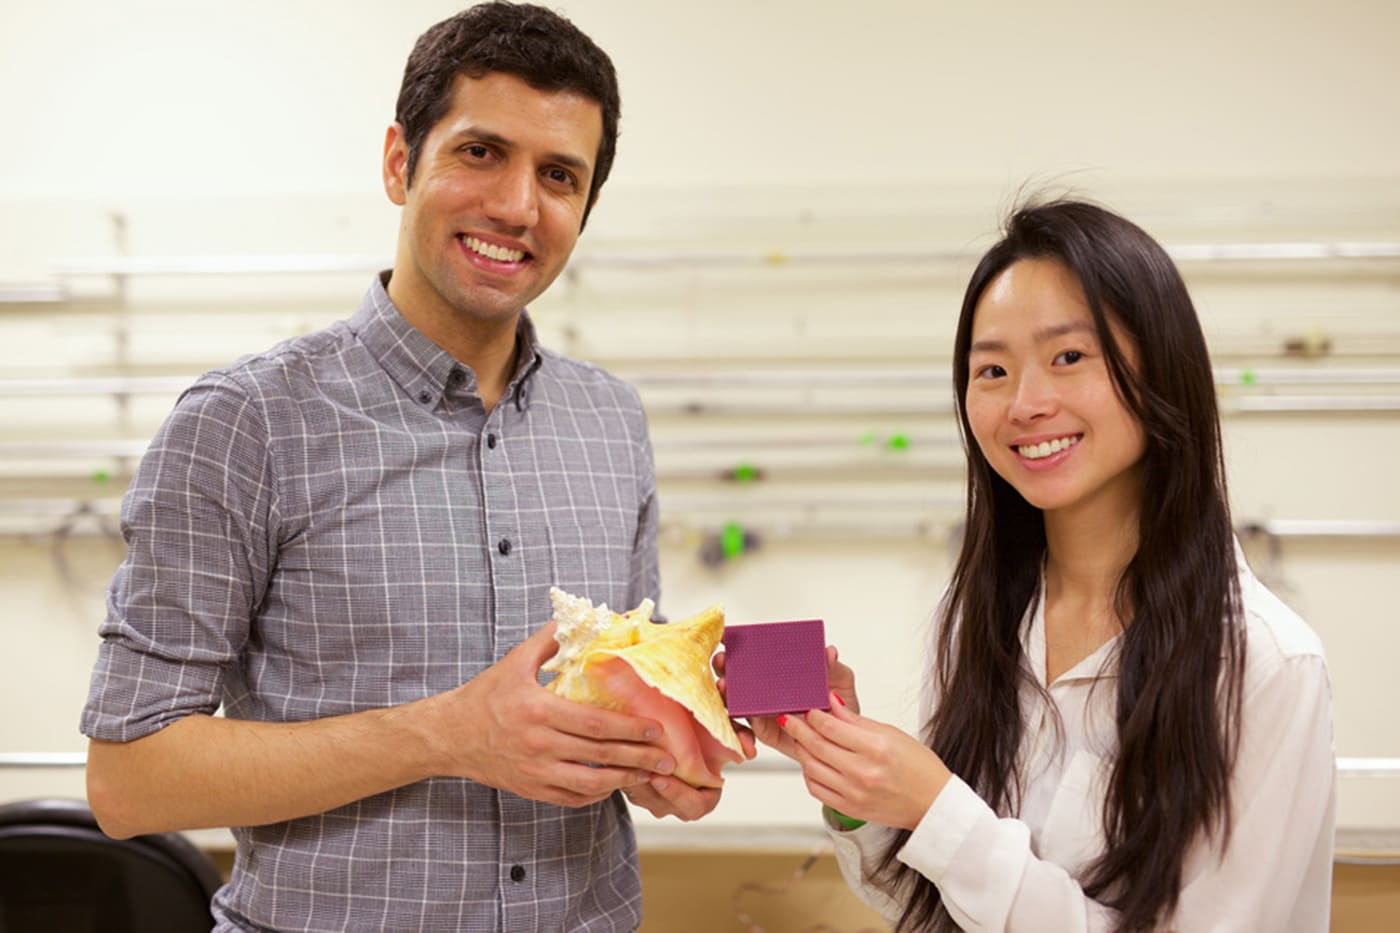 Conch shells hold the secret to impact-resistant armor